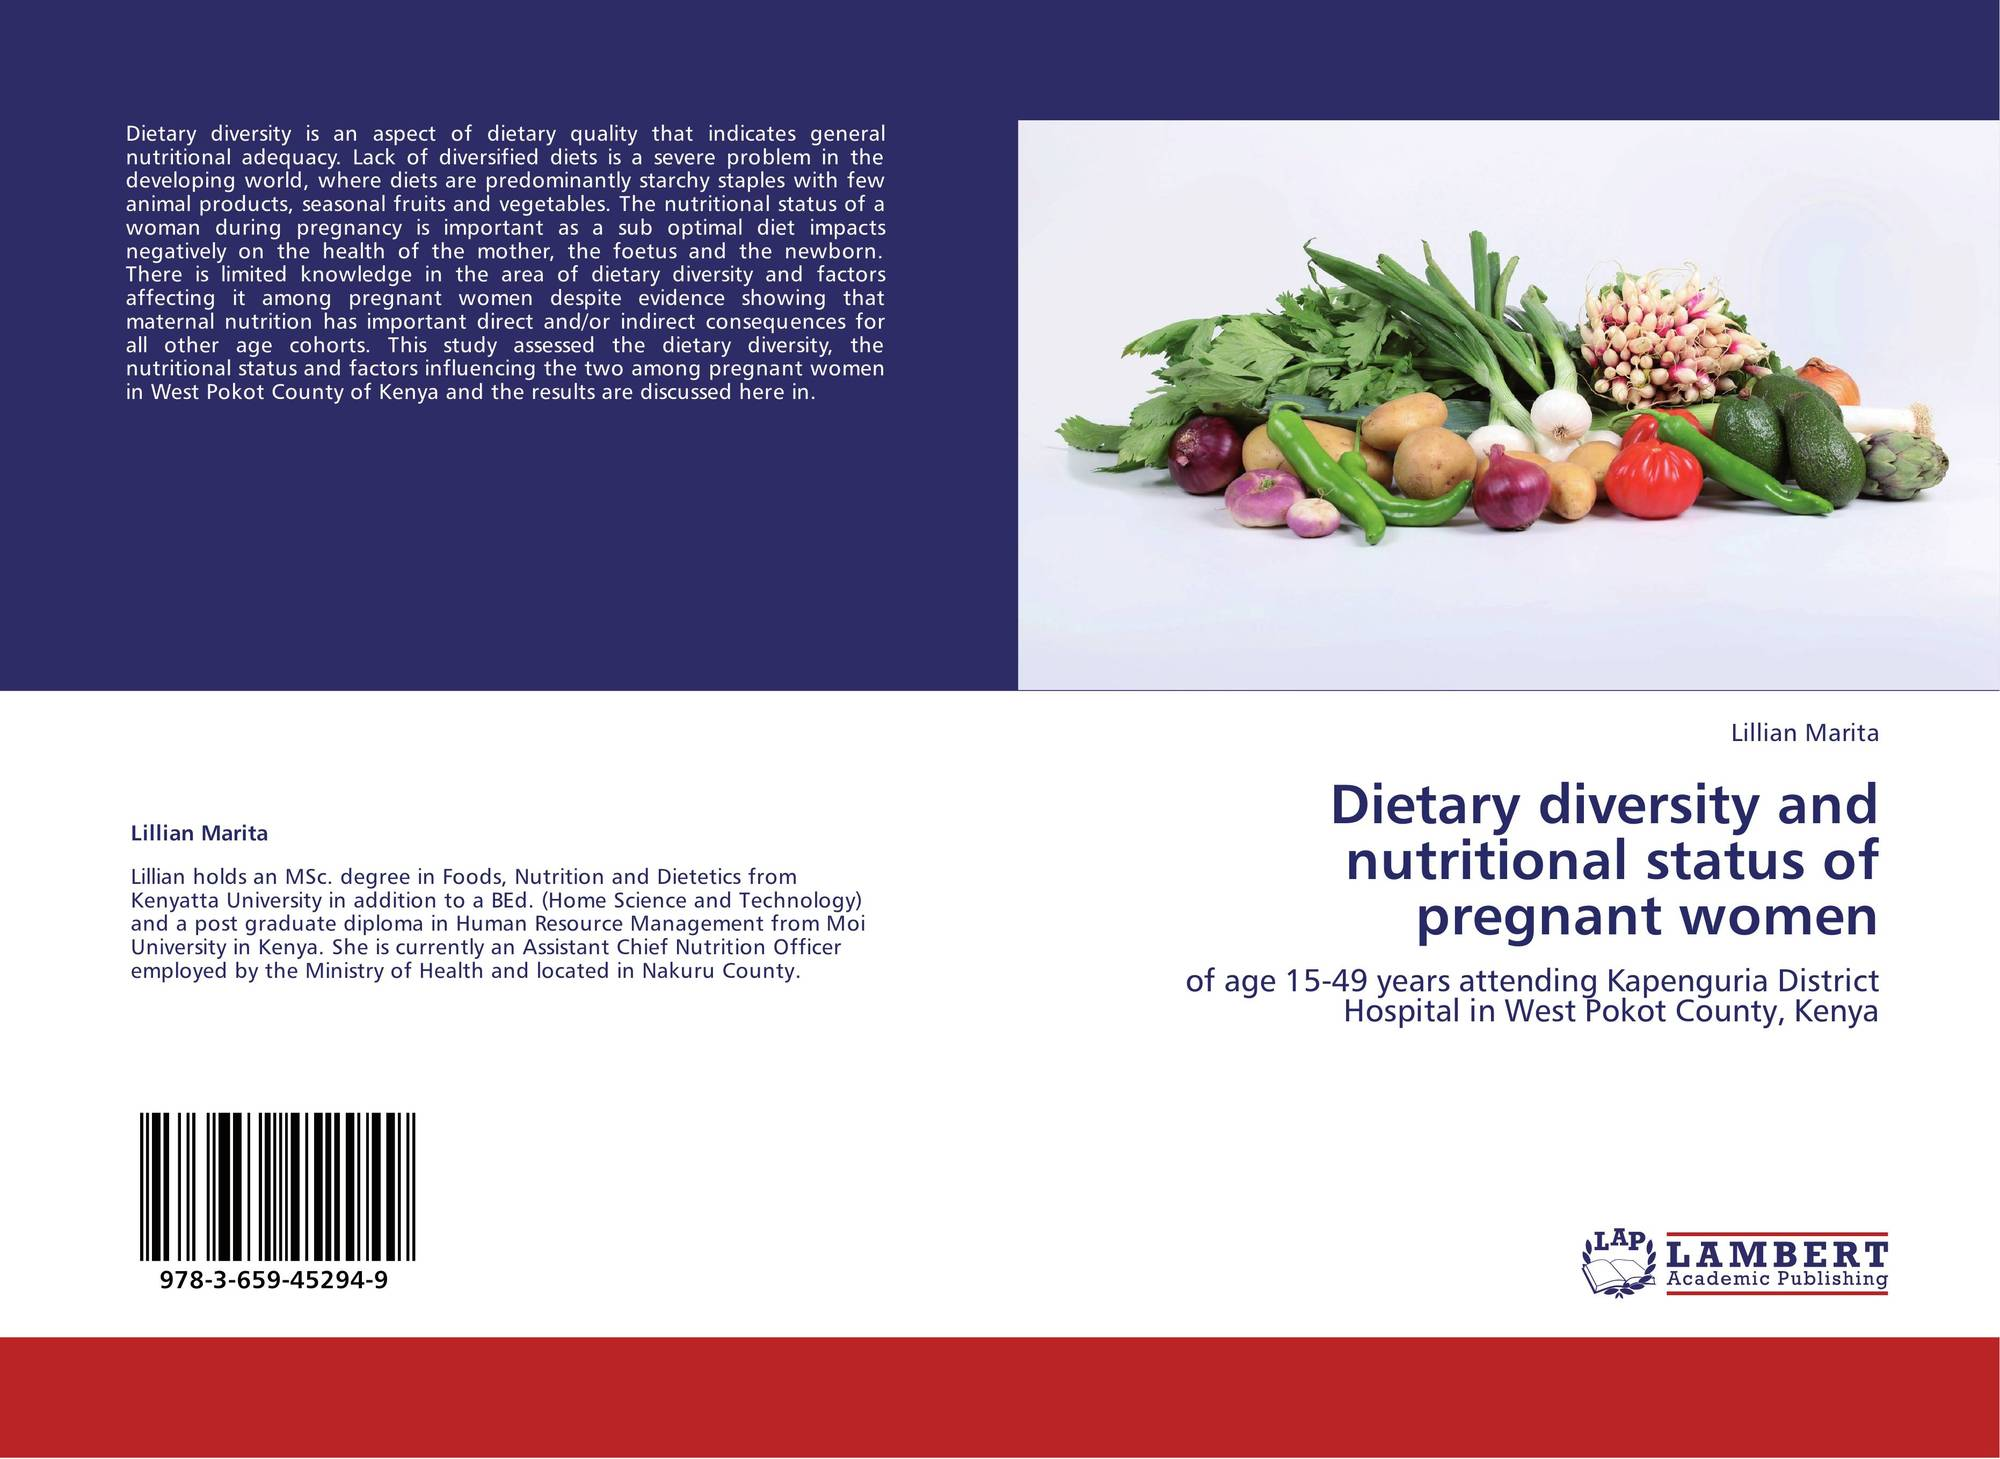 thesis on nutritional status Dietary diversity and nutritional status of pregnant women aged 15-49 years attending kapenguria district hospital west pokot county, kenya by marita lillian kemunto (bed-hsc & tech) reg no h60/20308/2010 department of foods, nutrition and dietetics a thesis submitted in partial fulfillment of the requirements for the award of the degree of.